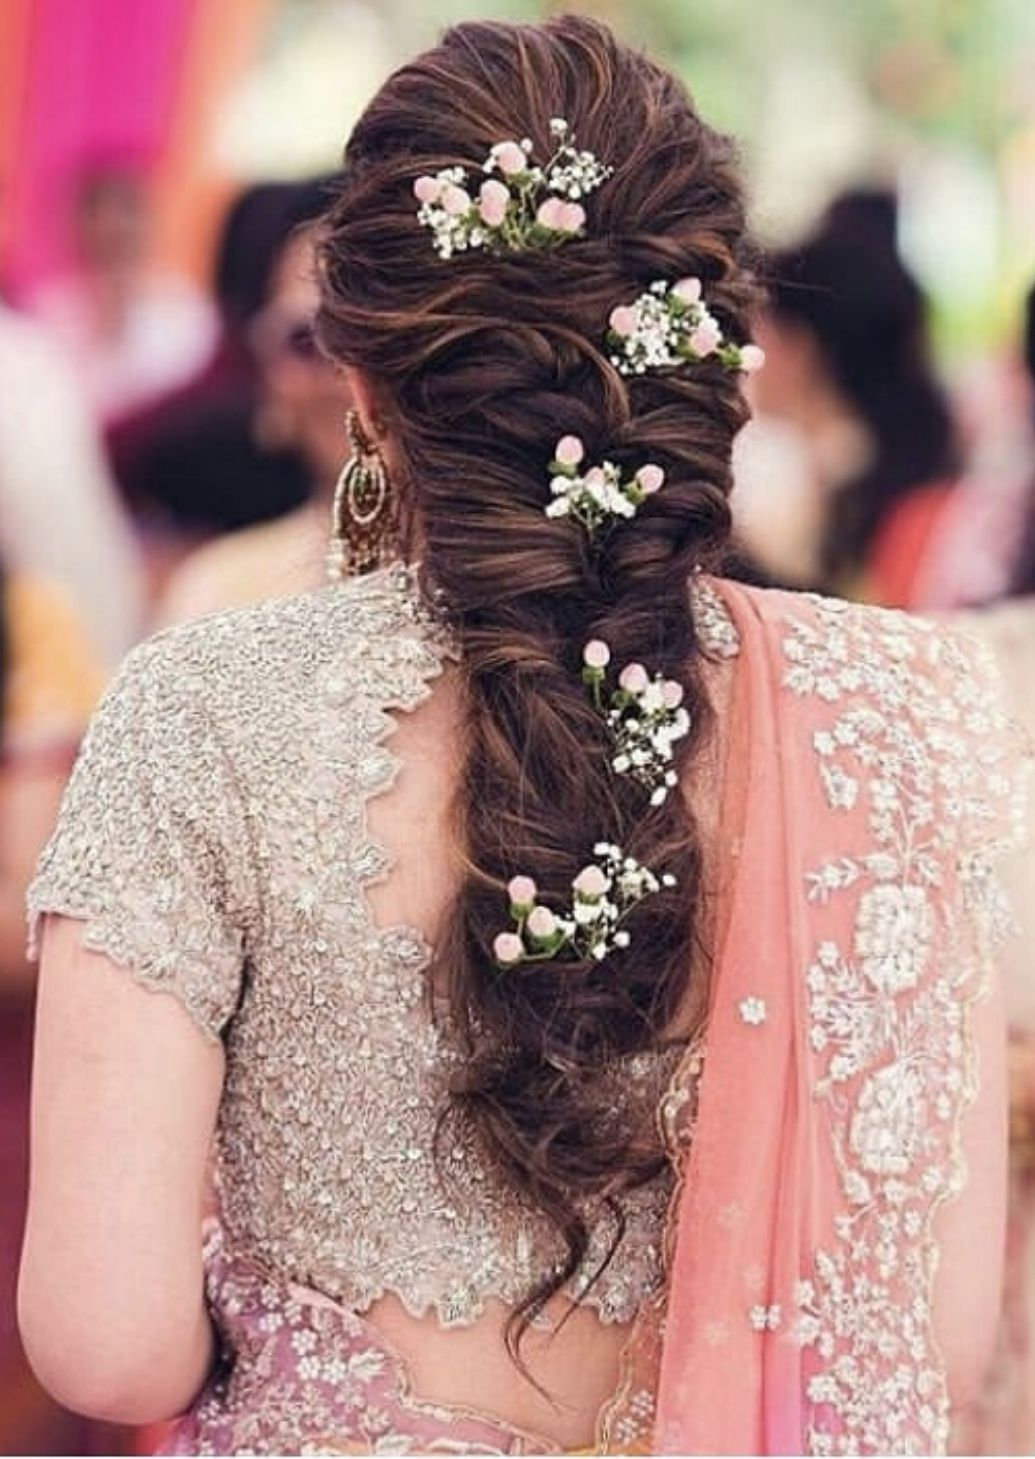 Hairstyle Inspo For Brides Sisters Cousins Engagement